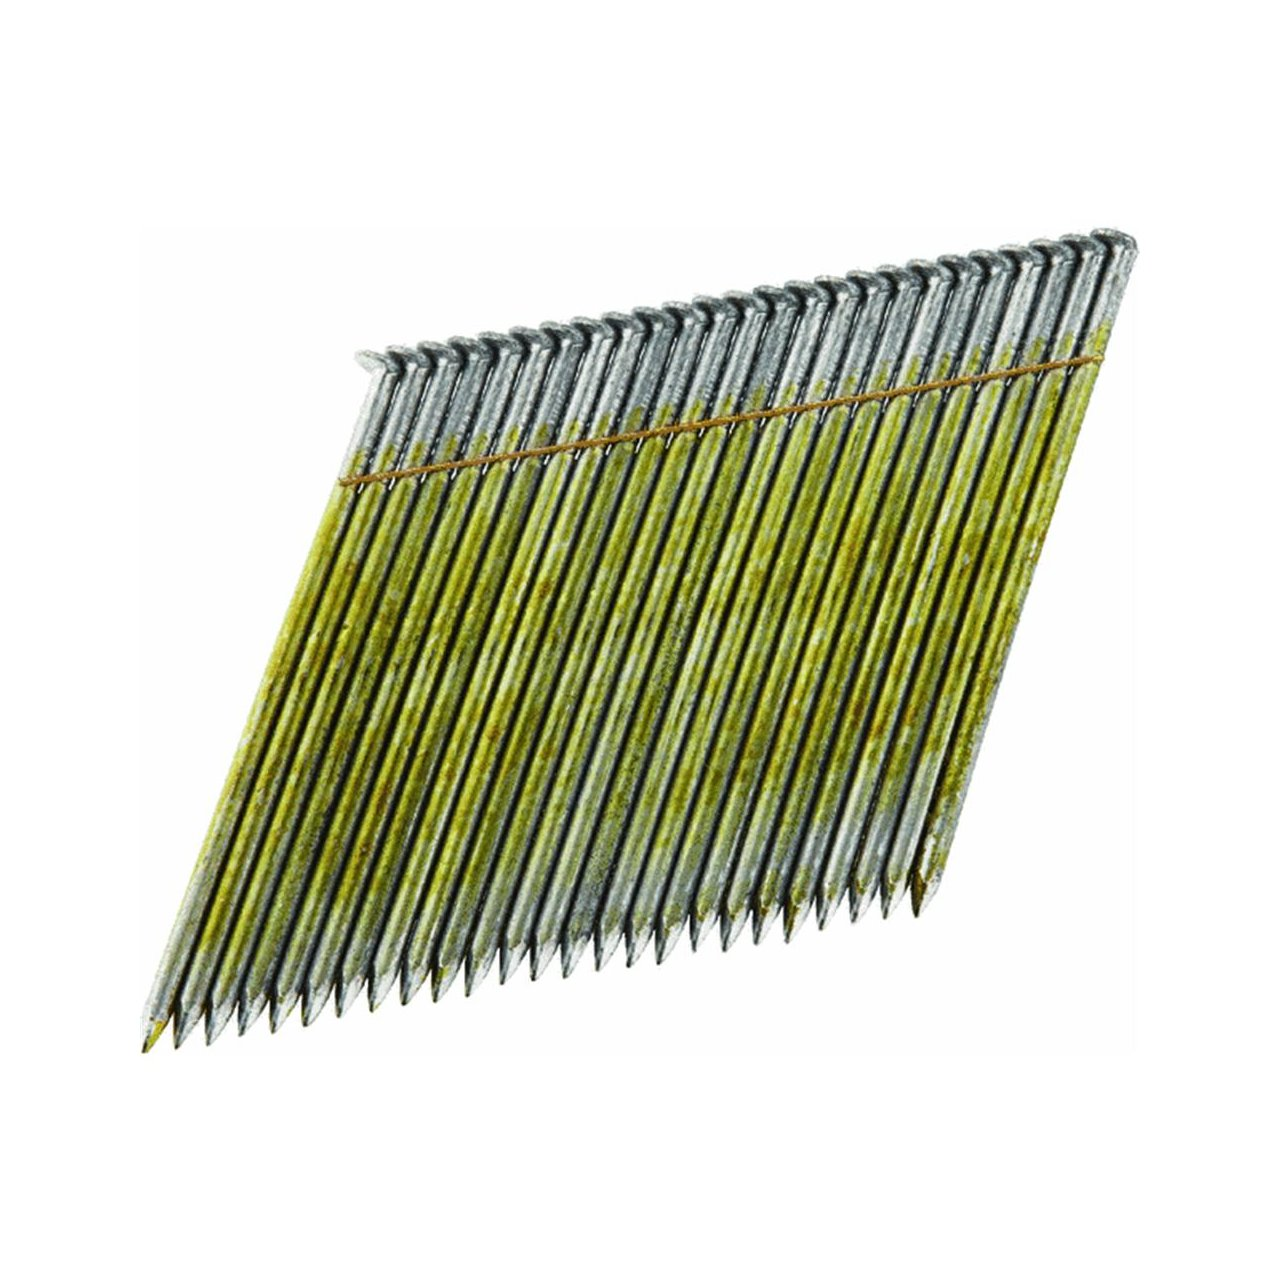 BOSTITCH S16D131-FH 28 Degree 3-1/2-Inch by .131-Inch Wire Weld ...